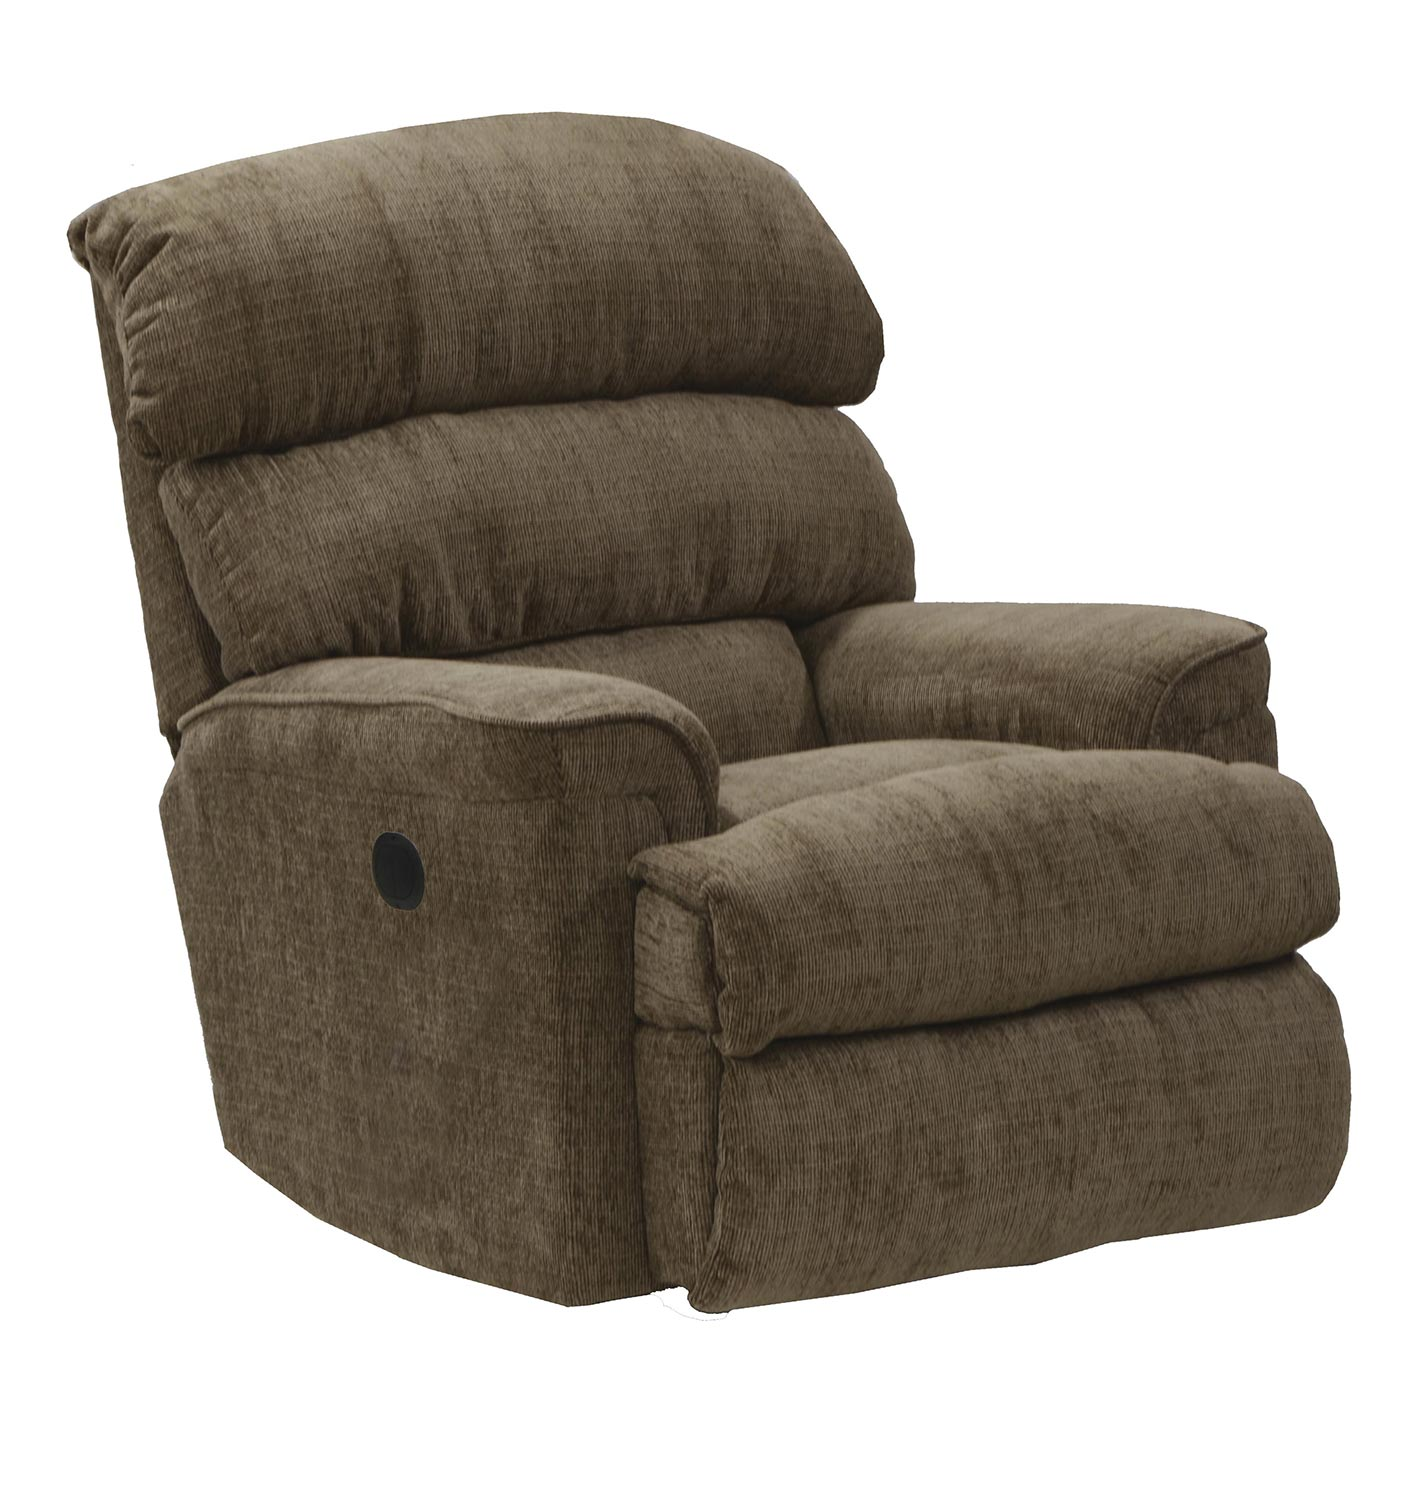 CatNapper Pearson Rocker Recliner Chair - Coffee